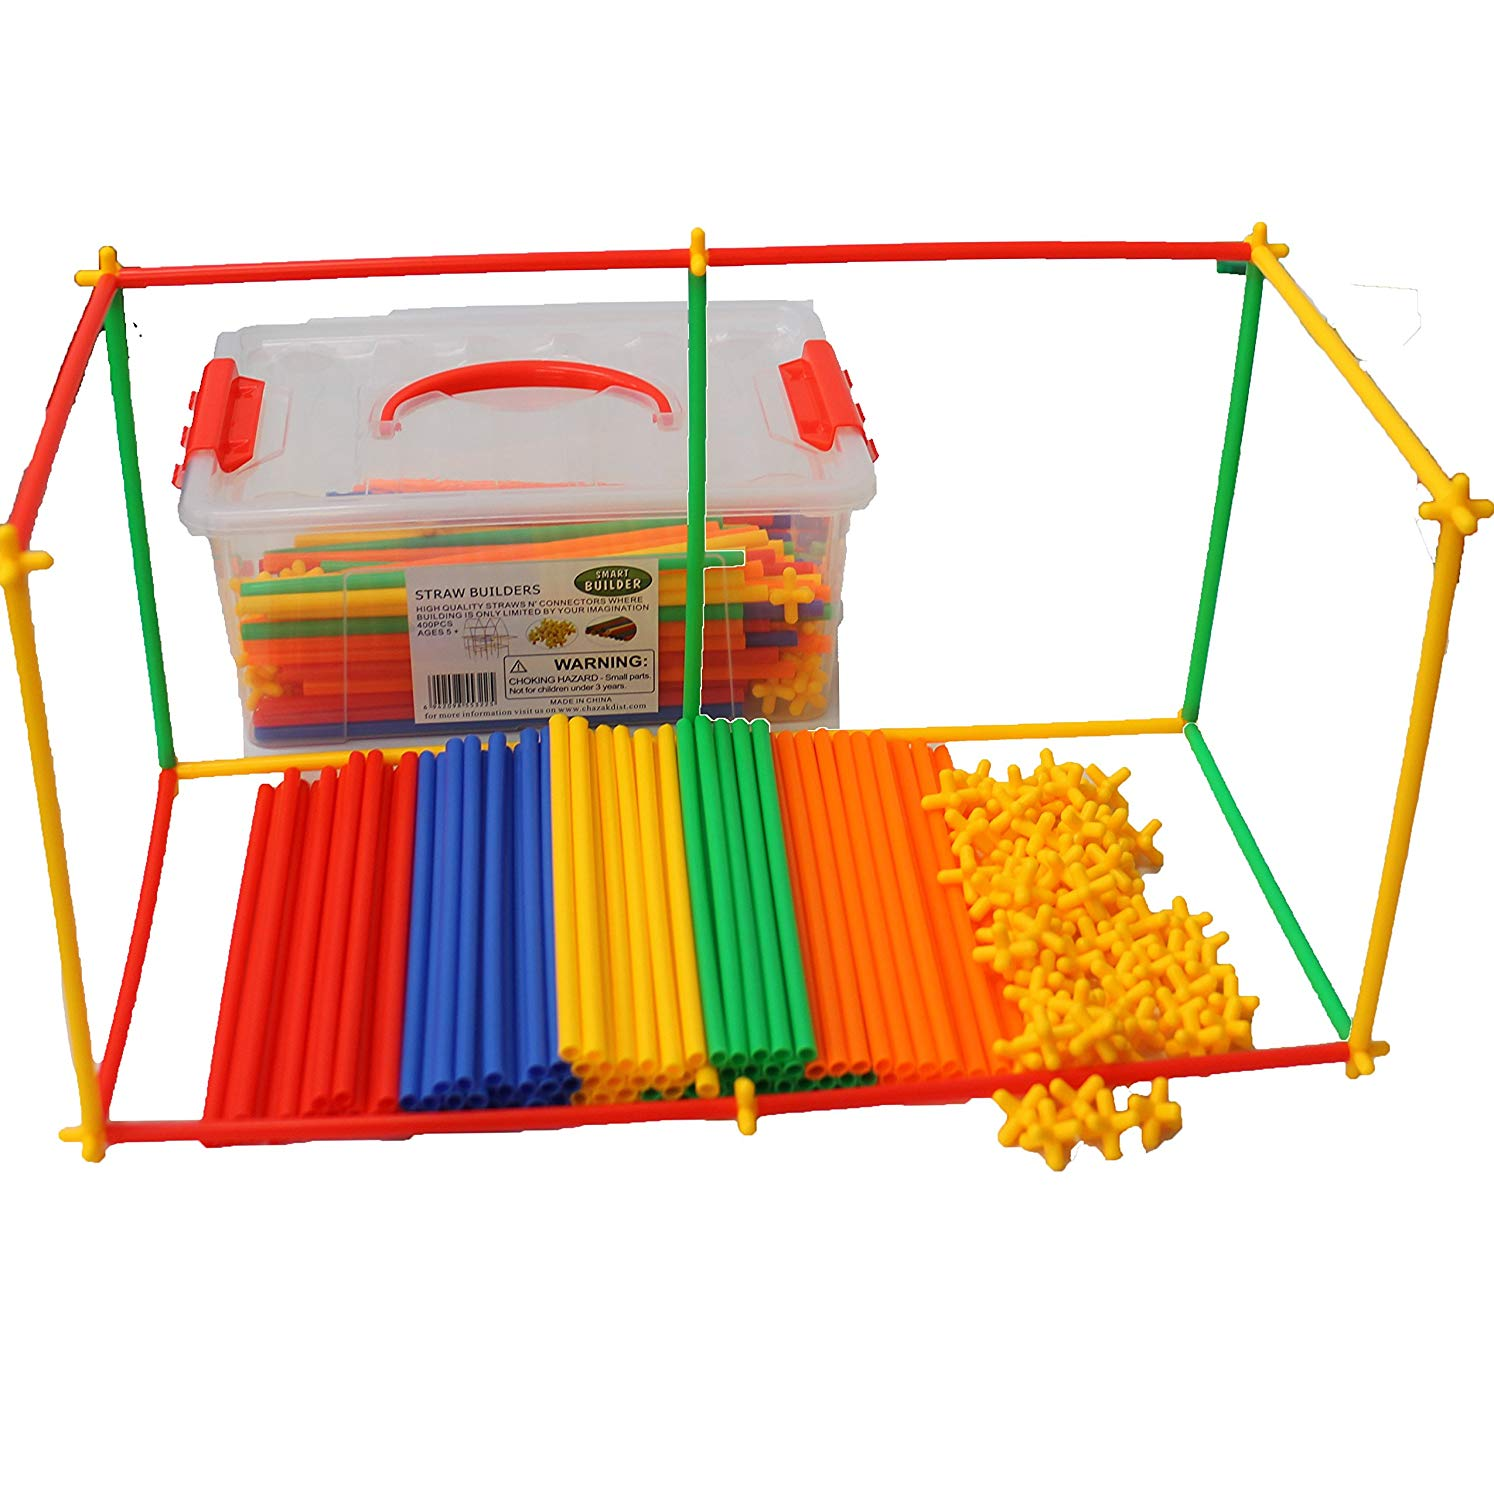 Straws Builders Construction Toy,Building Toys For Sale(500 PCS)